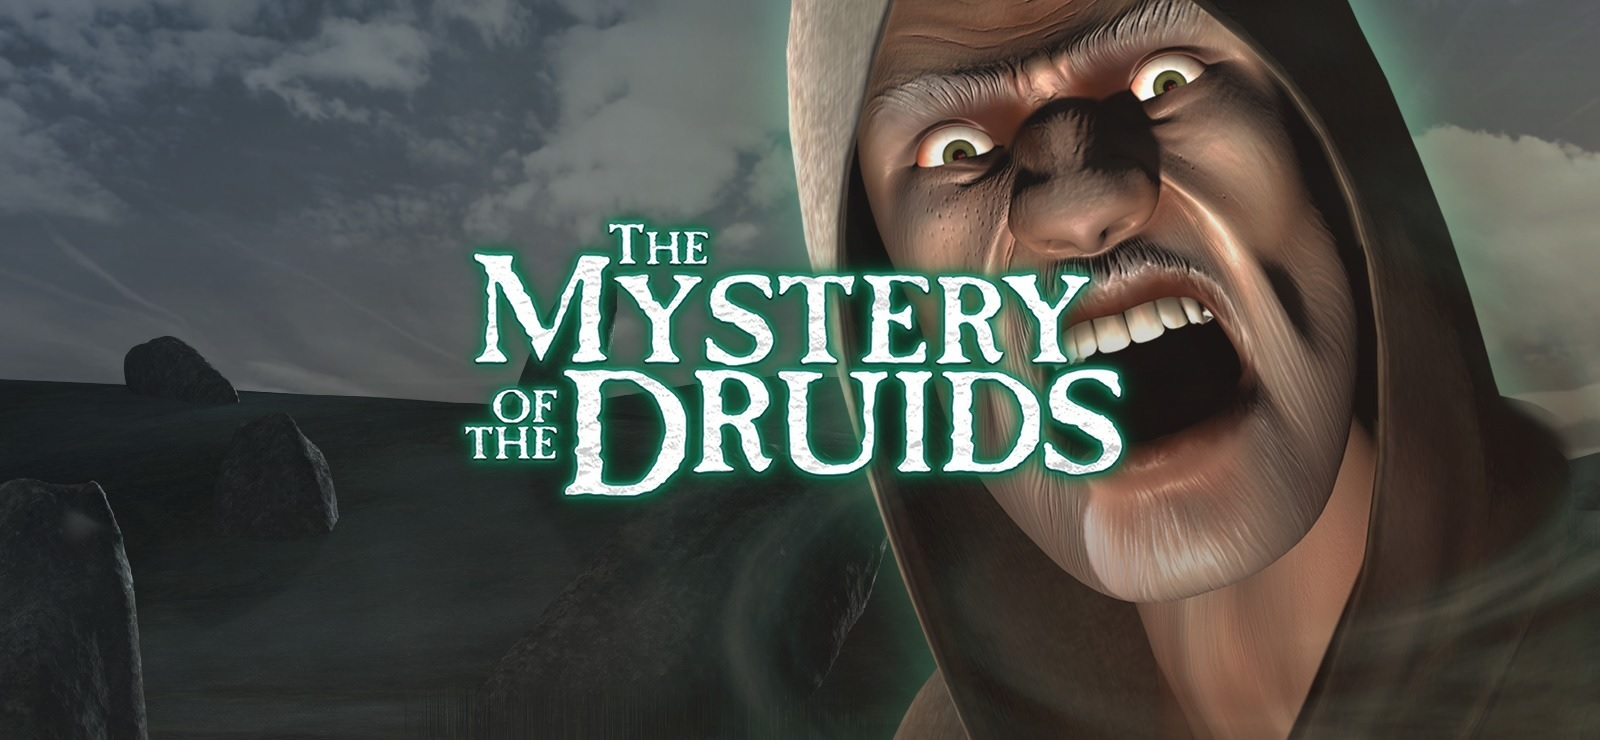 #The Mystery of the Druids